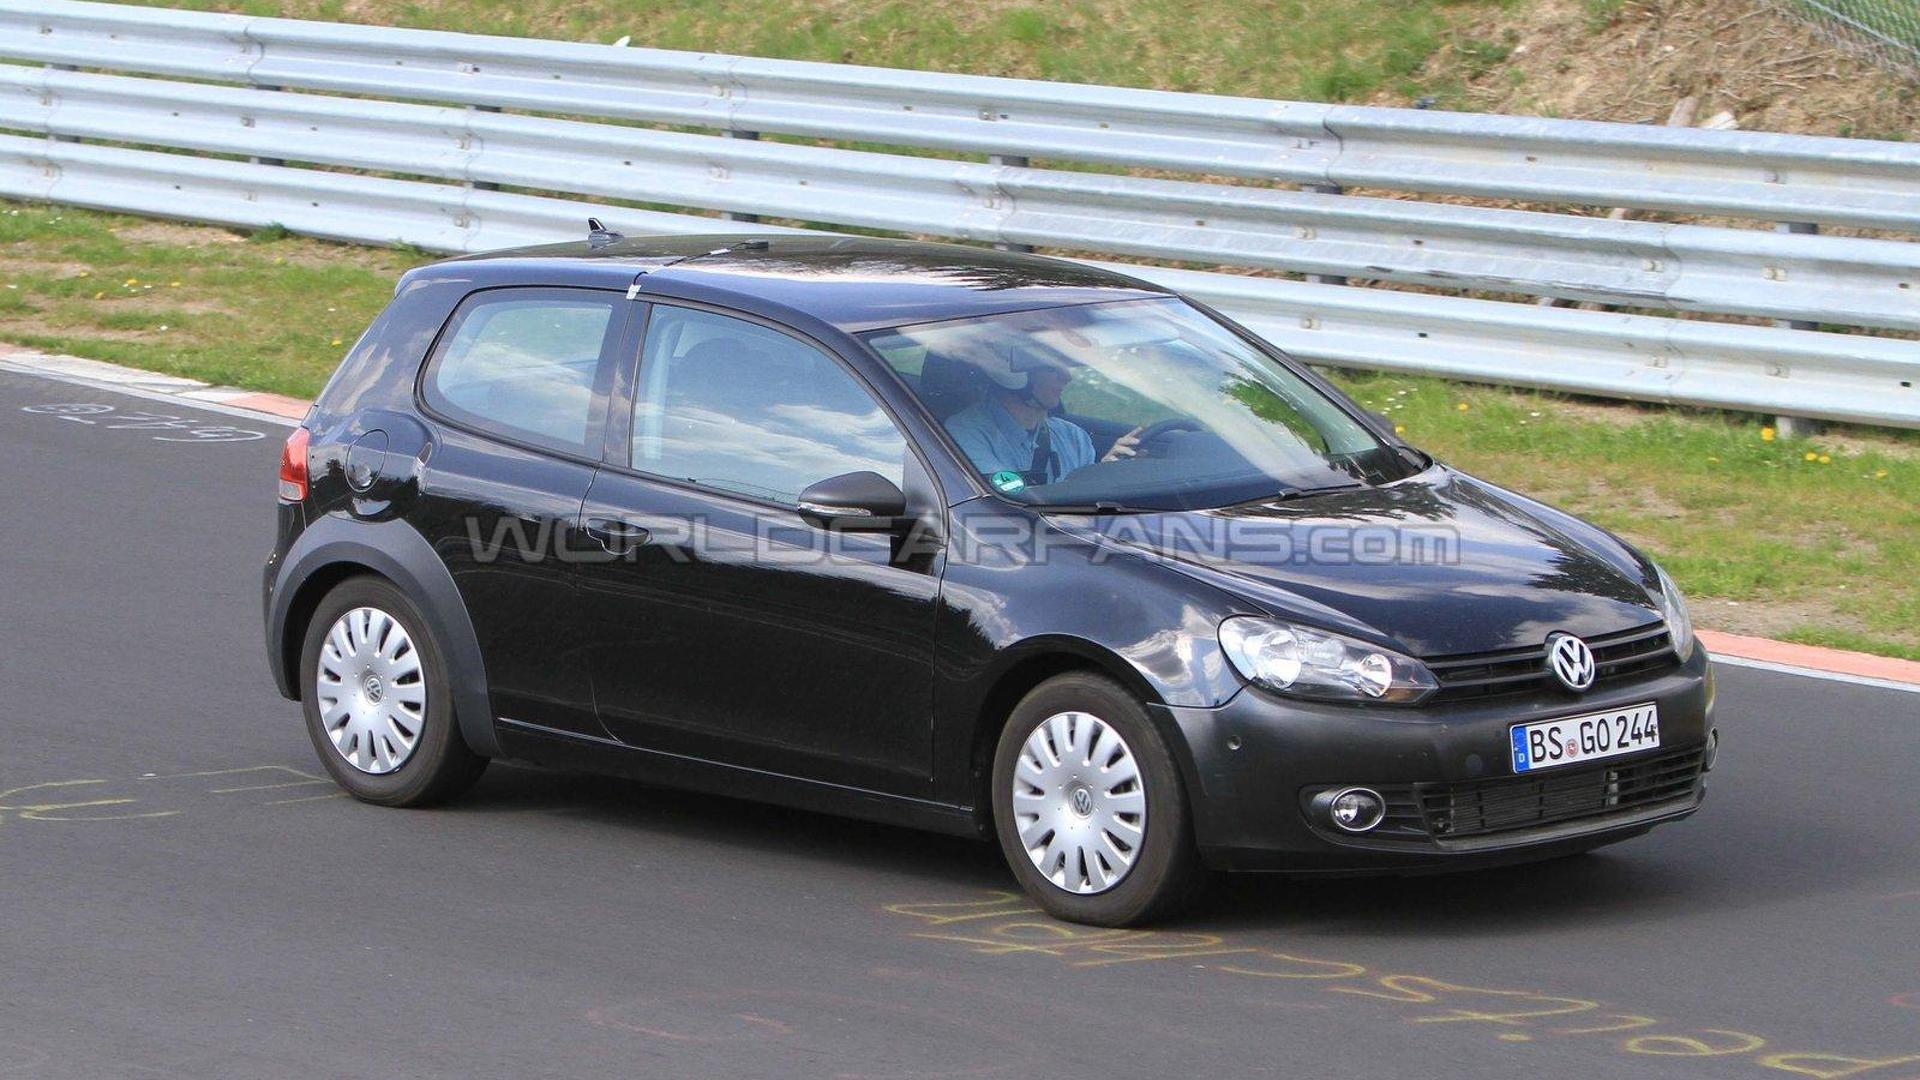 Next-generation VW Golf due in showrooms by end of 2012/early 2013